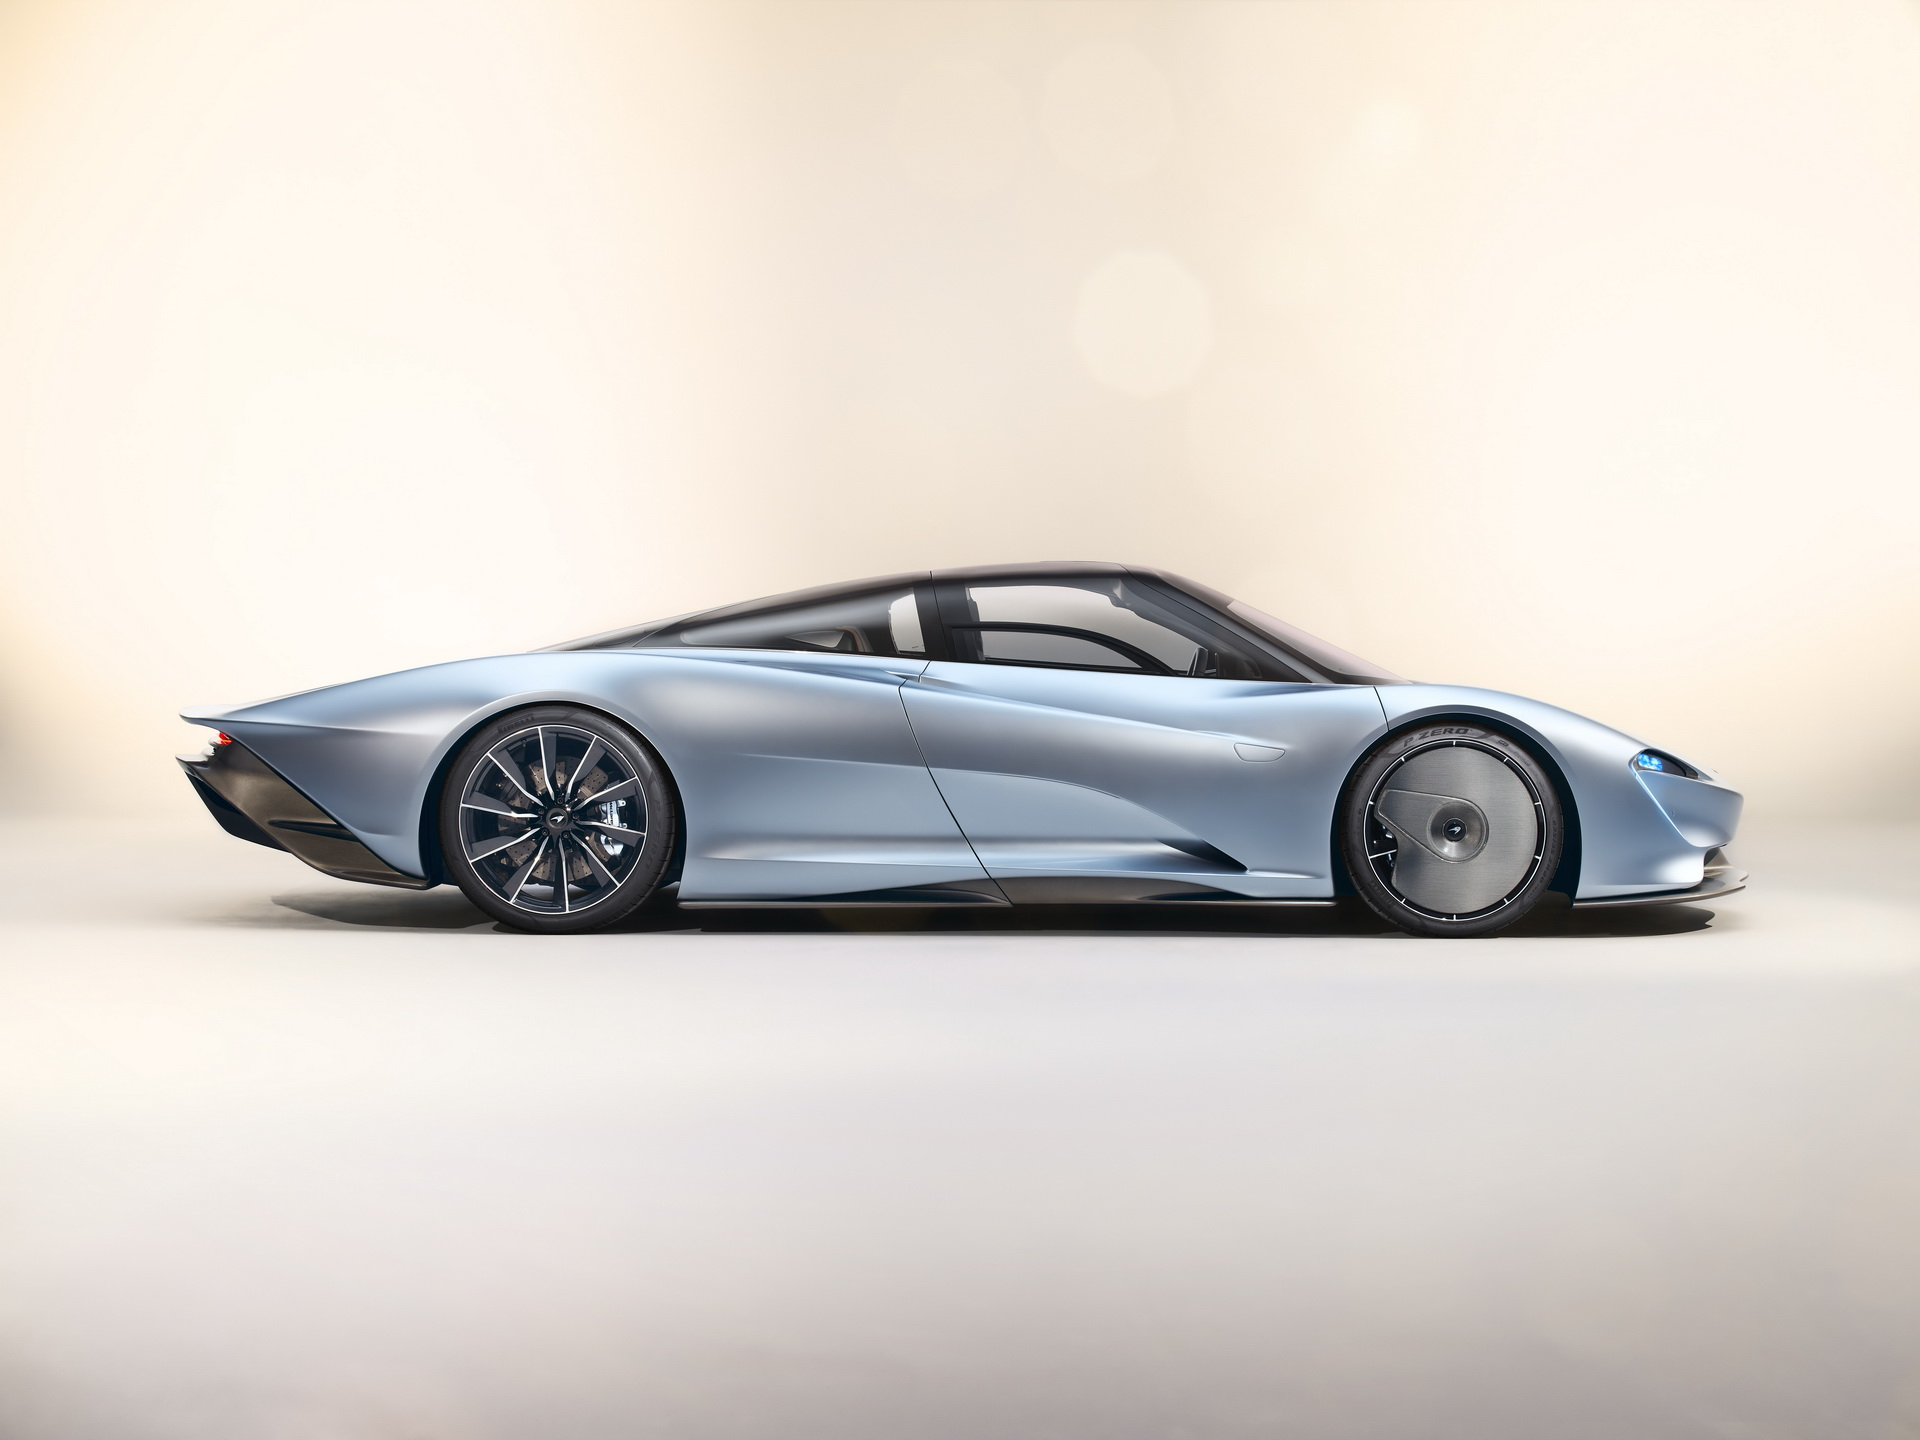 McLaren Speedtail can be driven in USA, but there's a catch